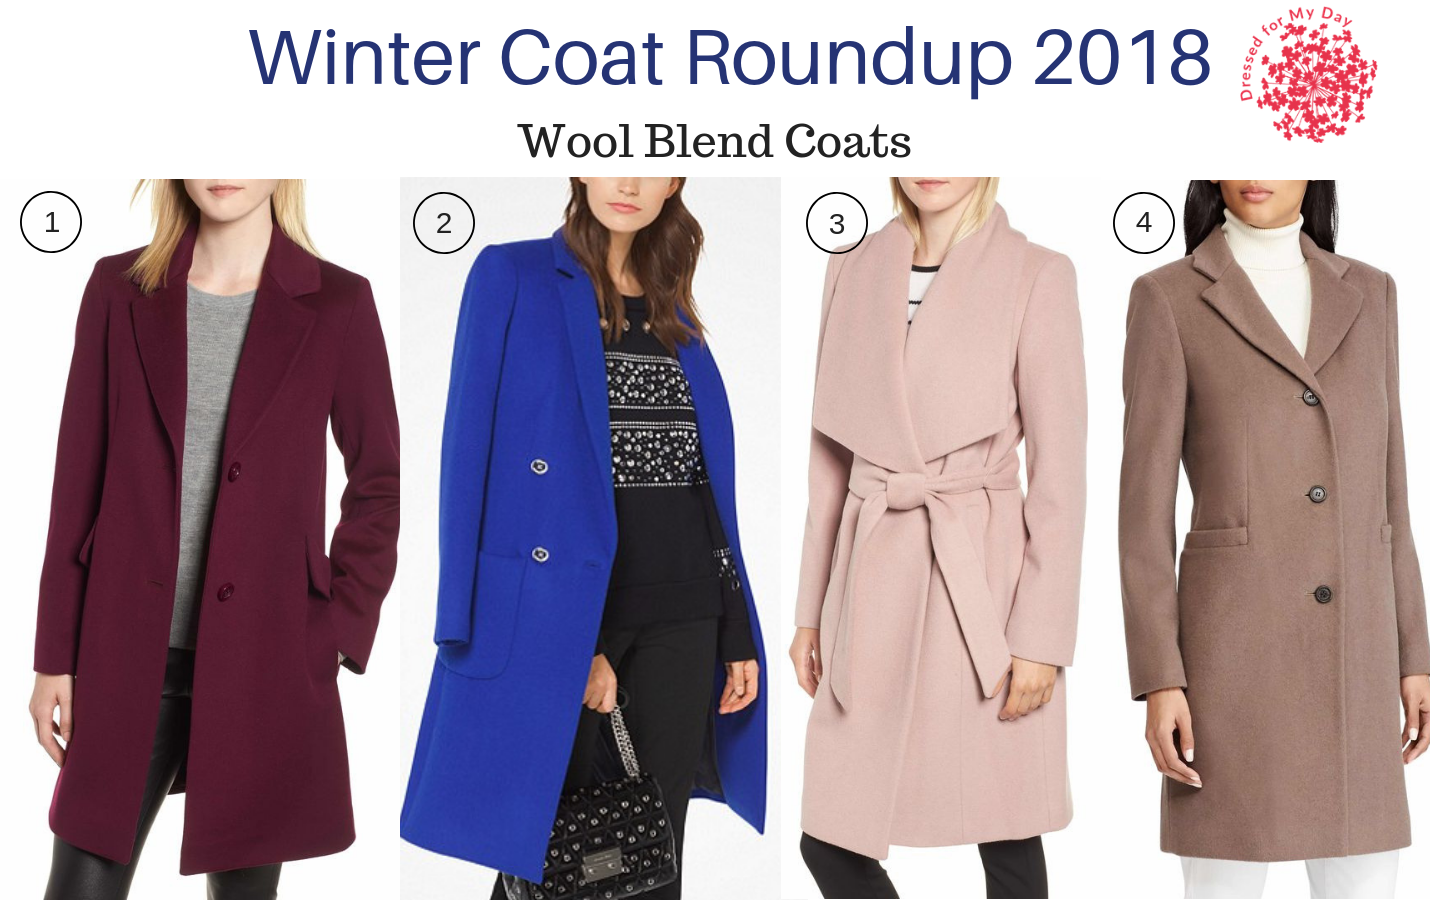 Winter Coat Roundup 2018 Wool Blend Coats